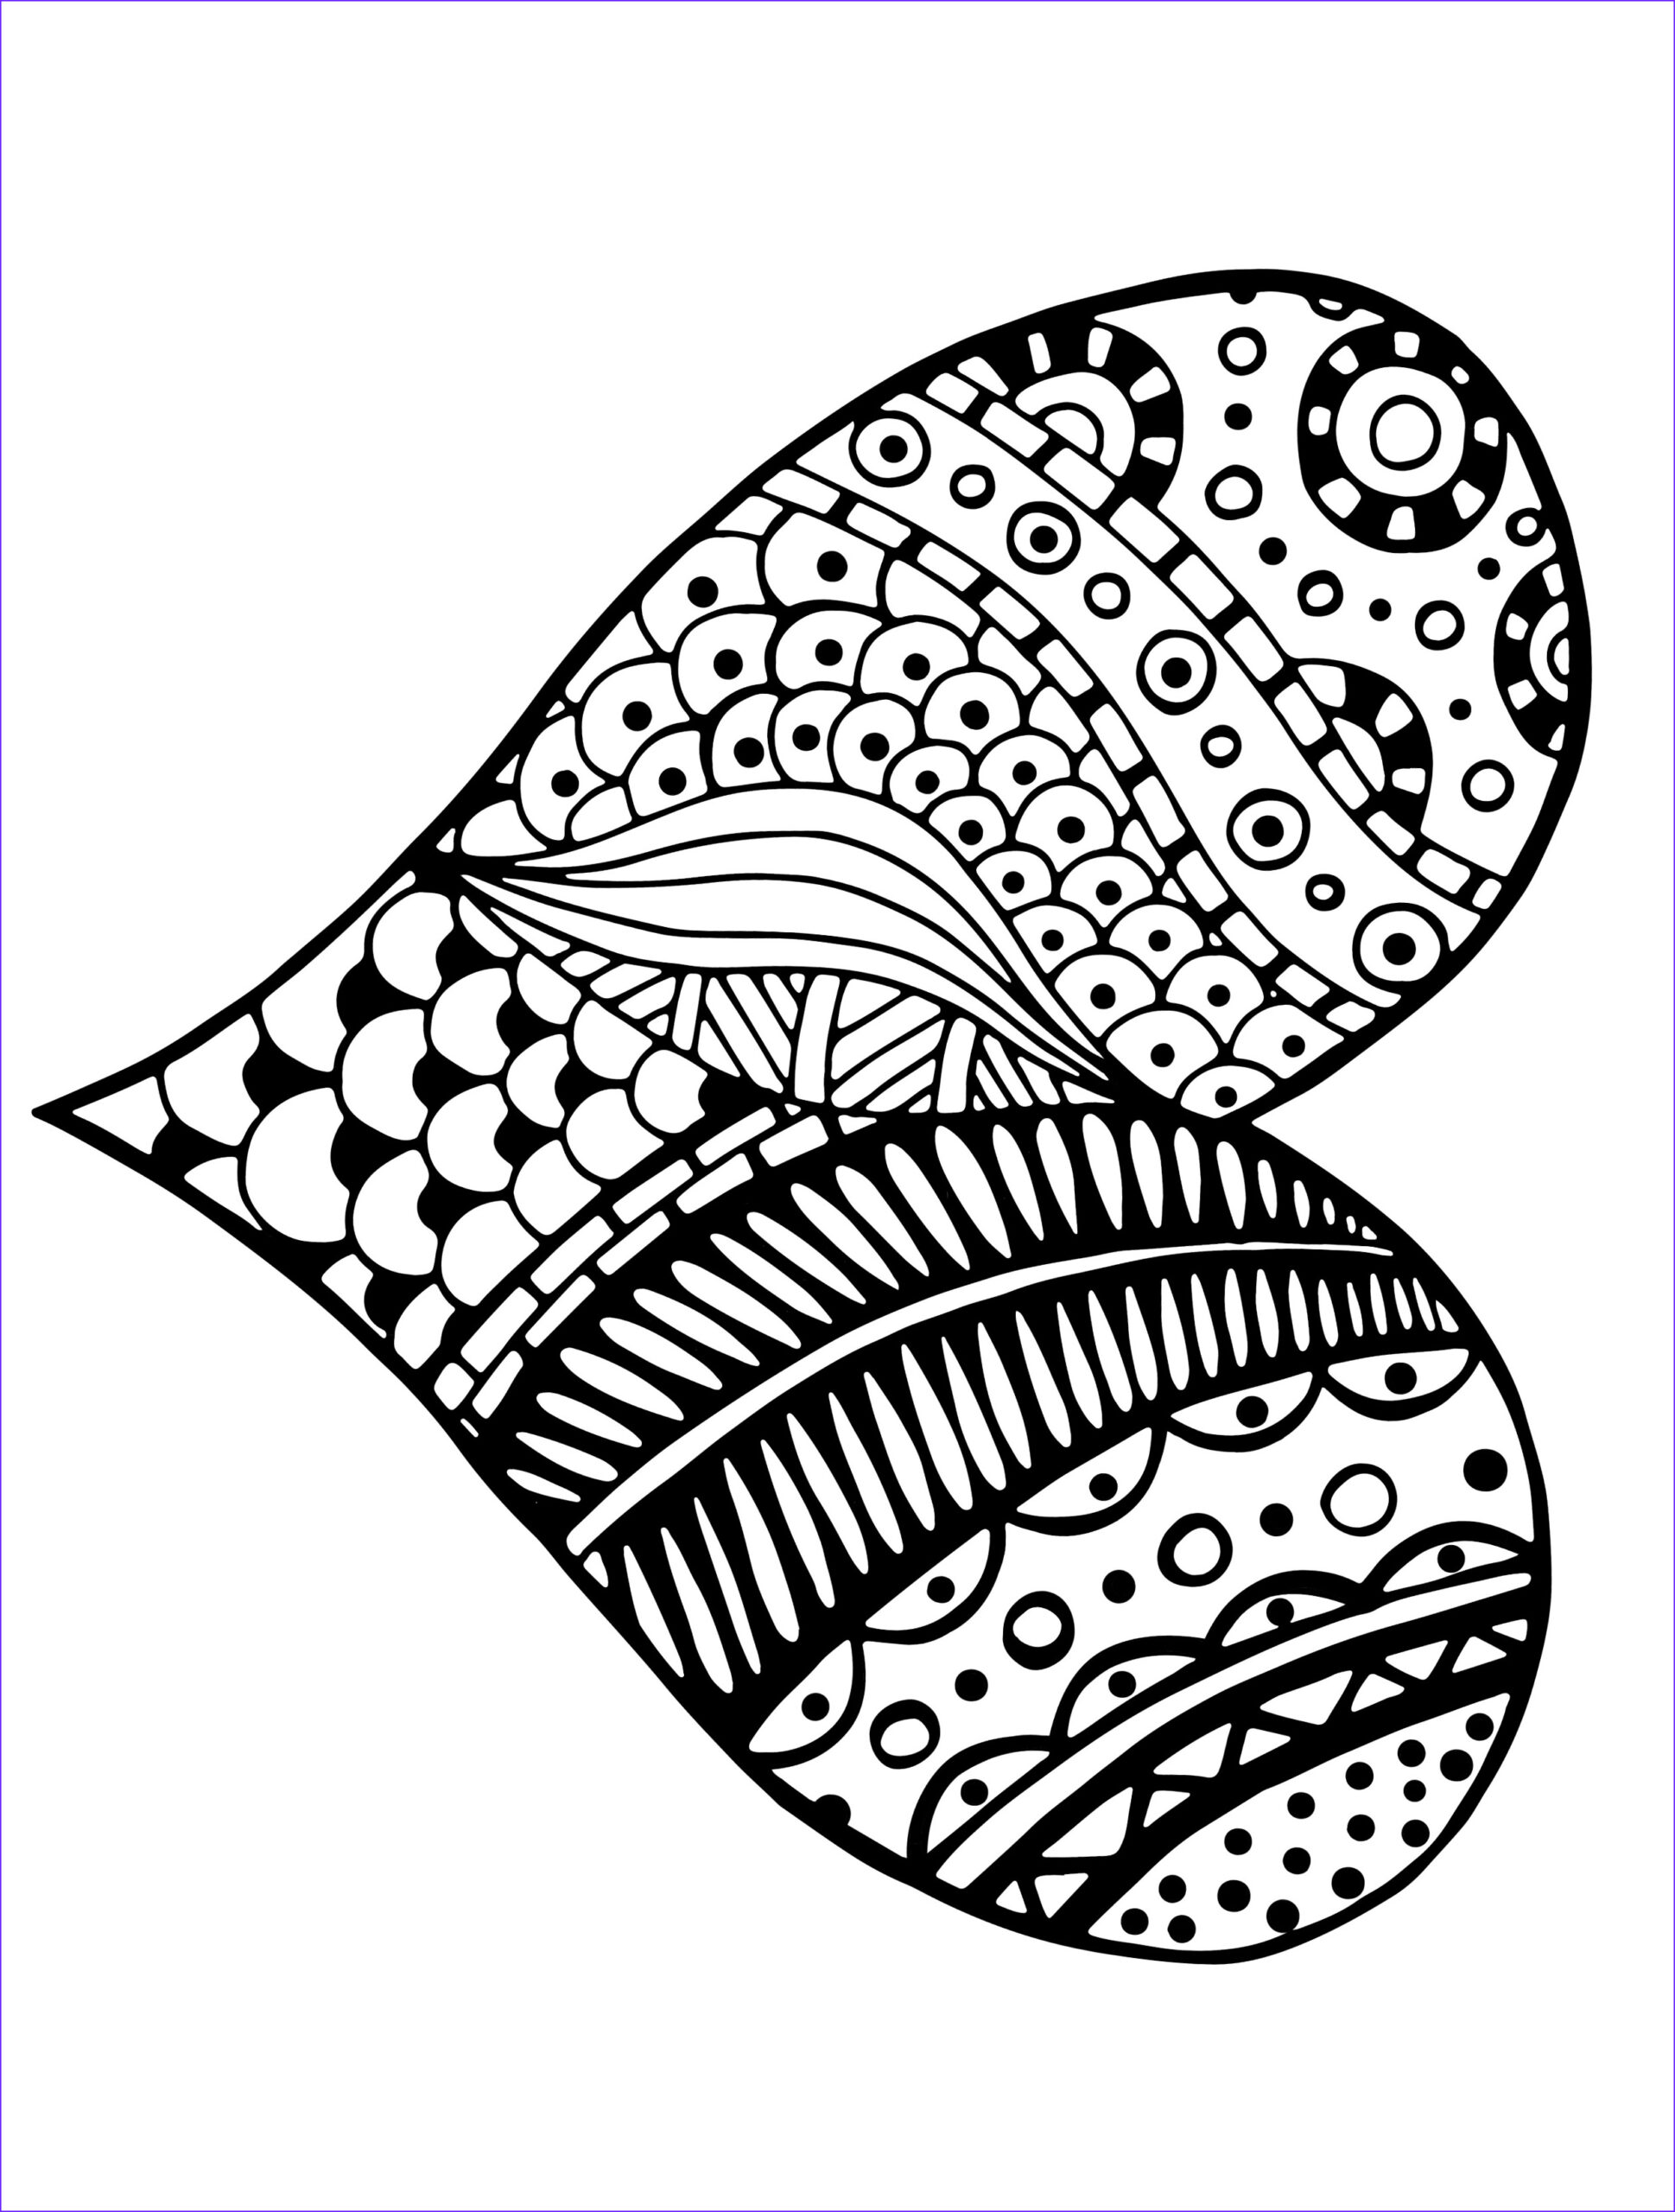 Free Coloring Pages for Adults to Print New Stock 20 Free Printable Valentines Adult Coloring Pages Nerdy